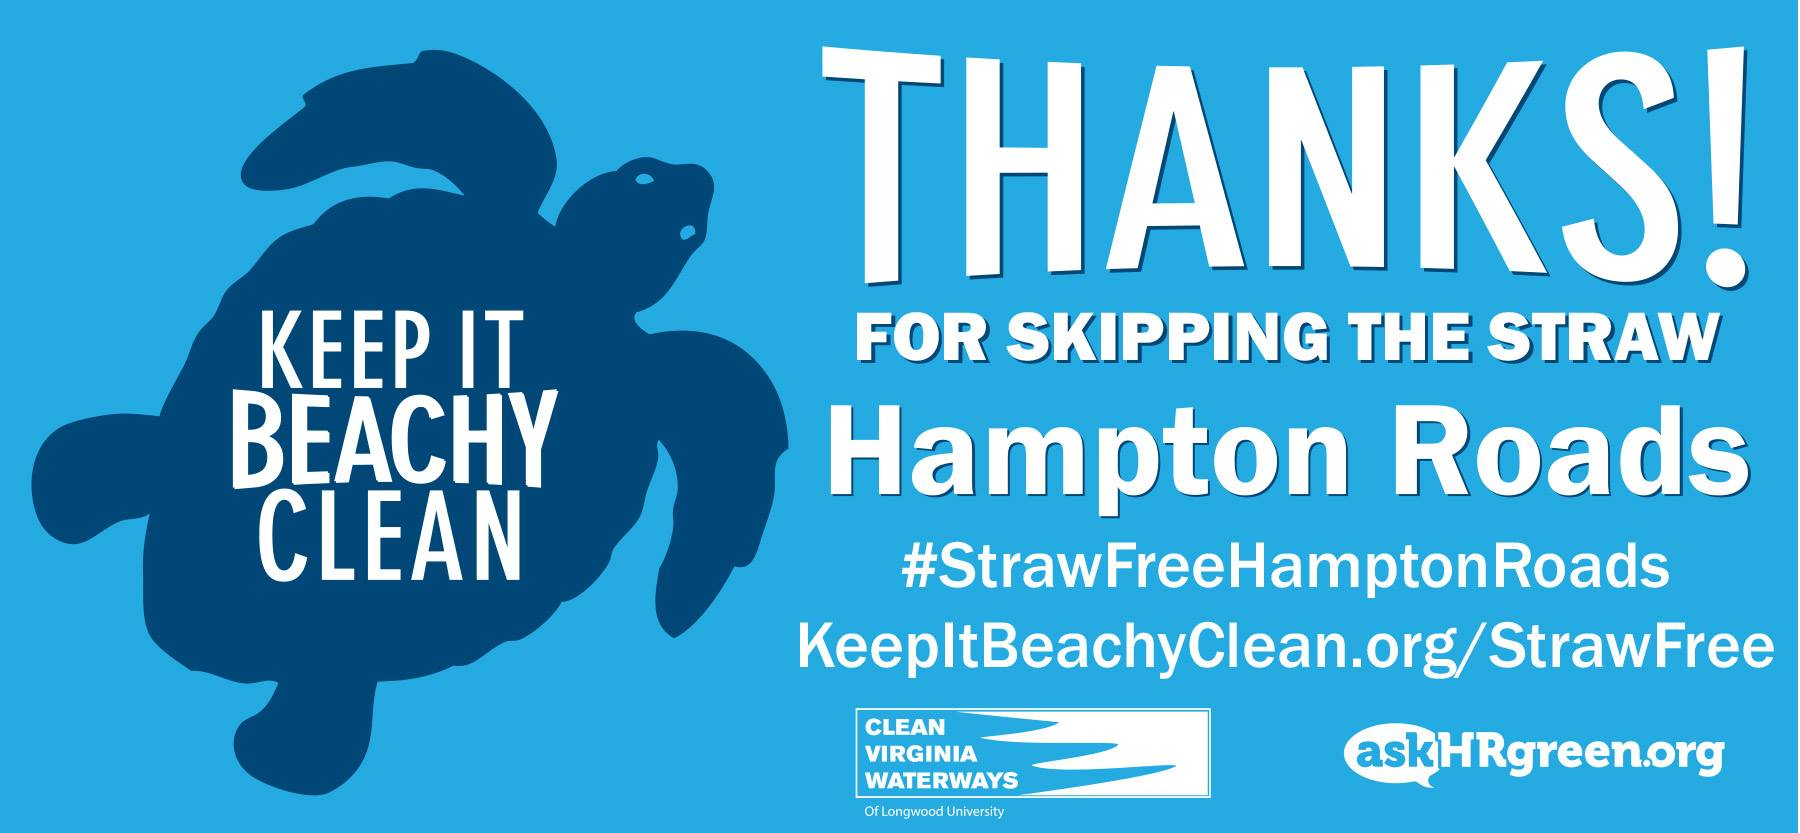 Graphic thanking Hampton Roads for skipping the straw